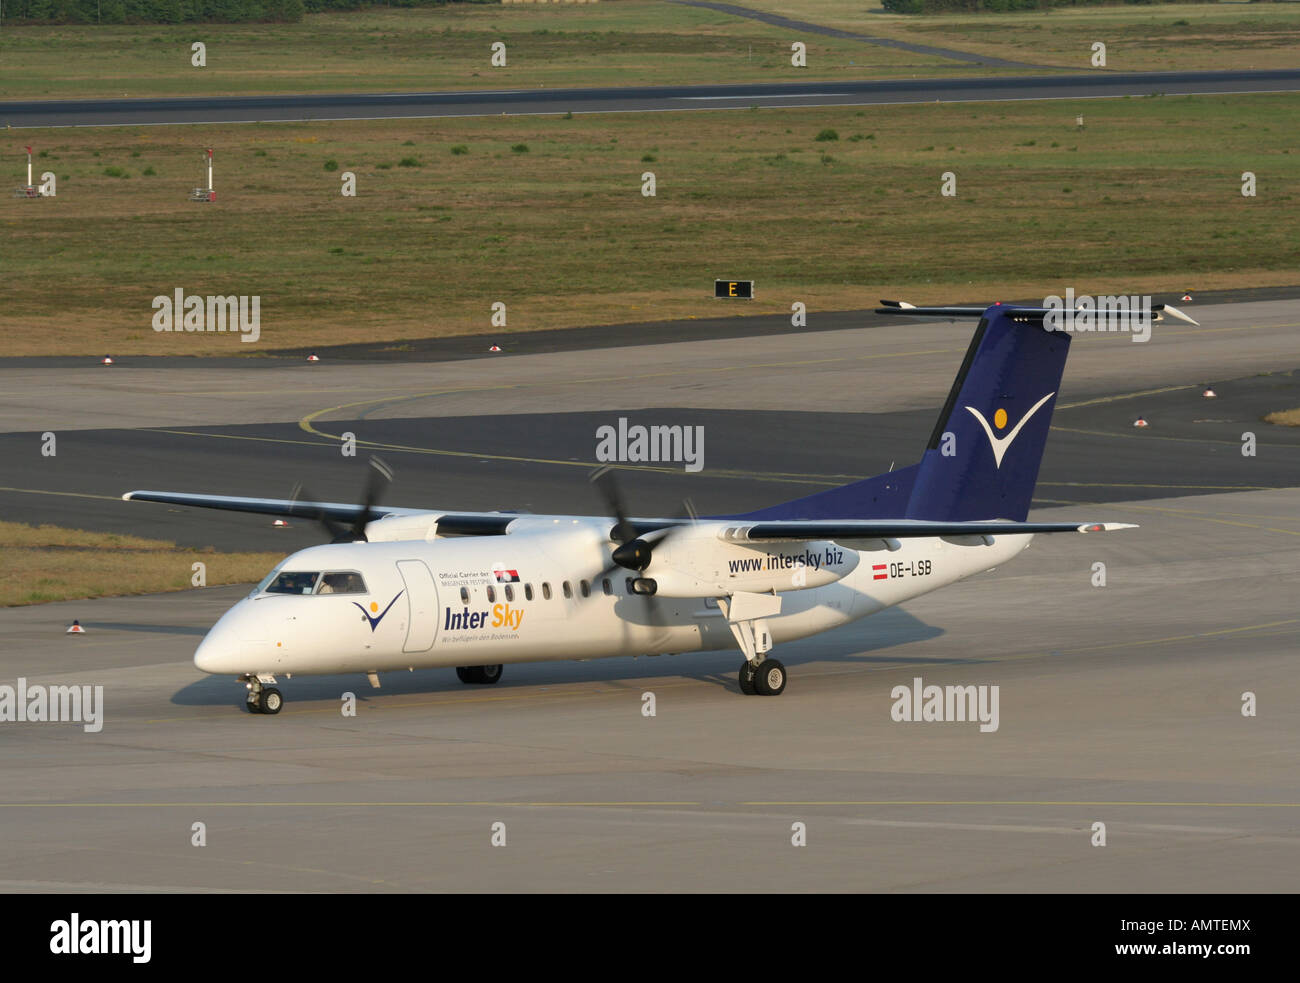 InterSky Bombardier Dash 8-Q300 regional airliner at Cologne/Bonn Airport, Germany - Stock Image